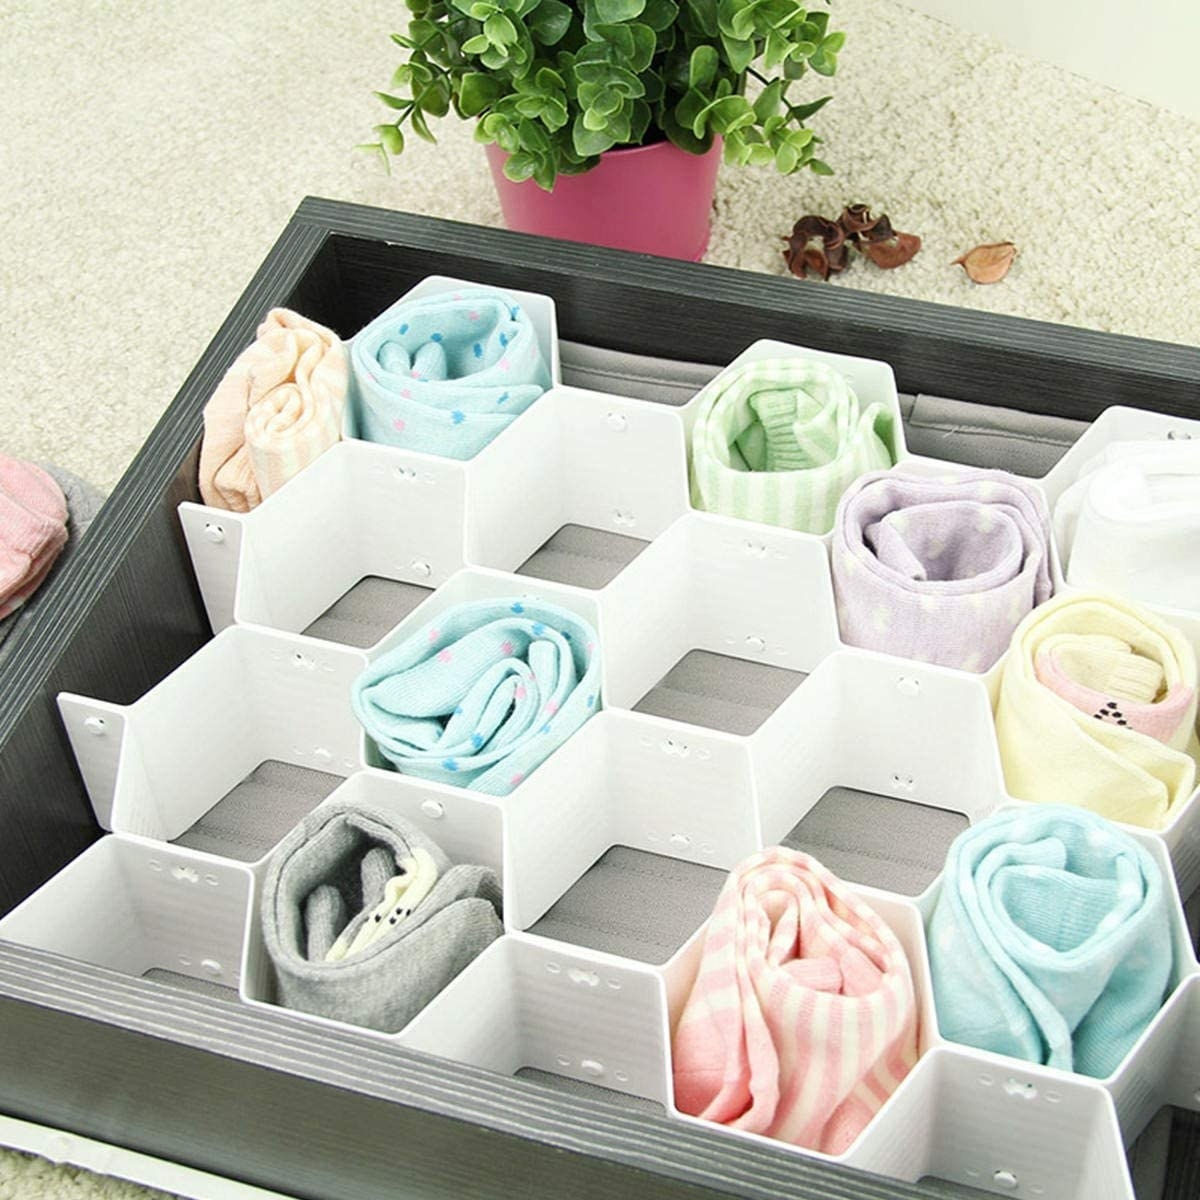 Several pairs socks in a honeycomb organizer